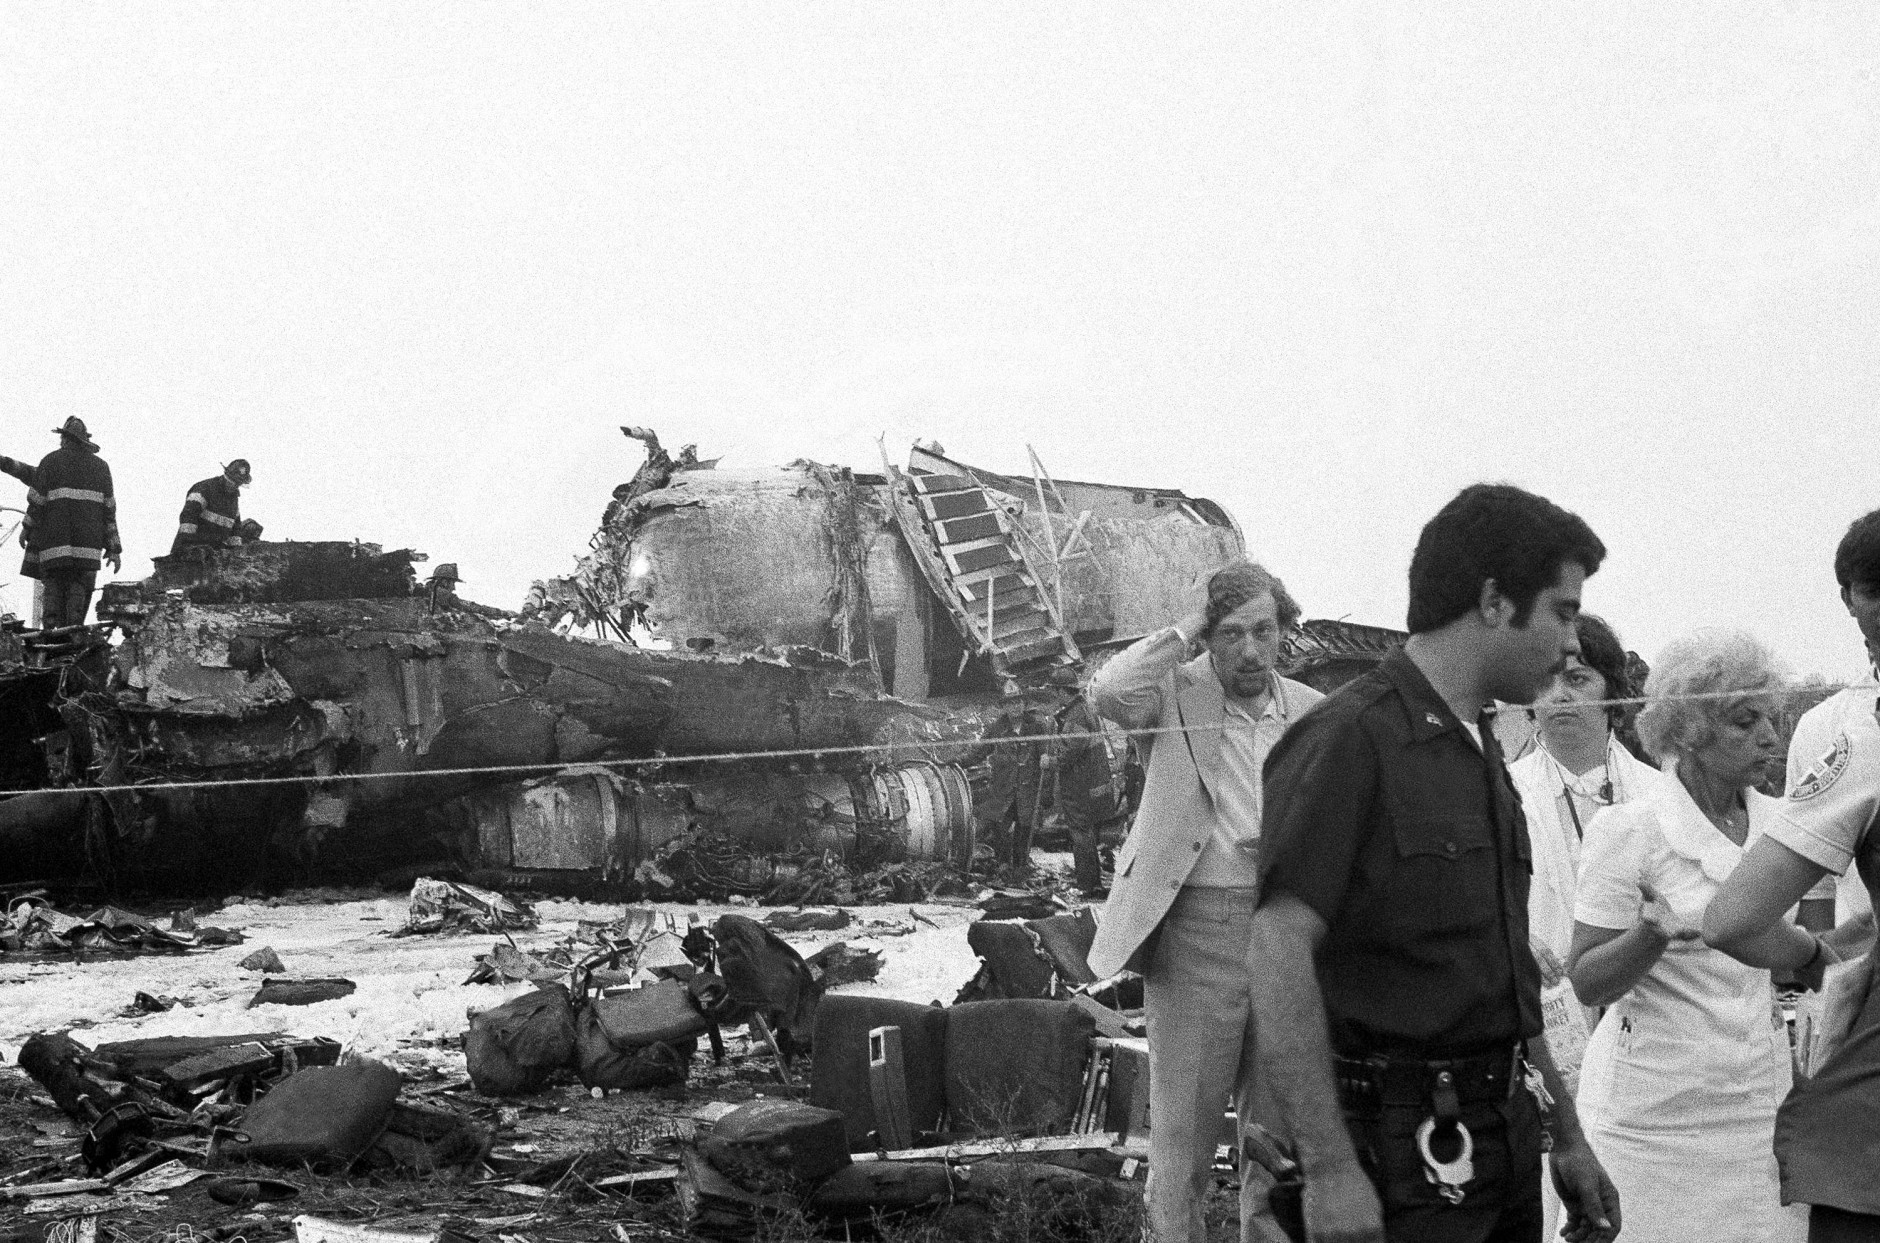 Firemen work amidst the wreckage of an Eastern Airlines 727 jet that crashed at Kennedy Airport in the Queens borough of New York, June 24, 1974, with a reported death toll of more than 100.  The plane was en route from New Orleans. (AP Photo)